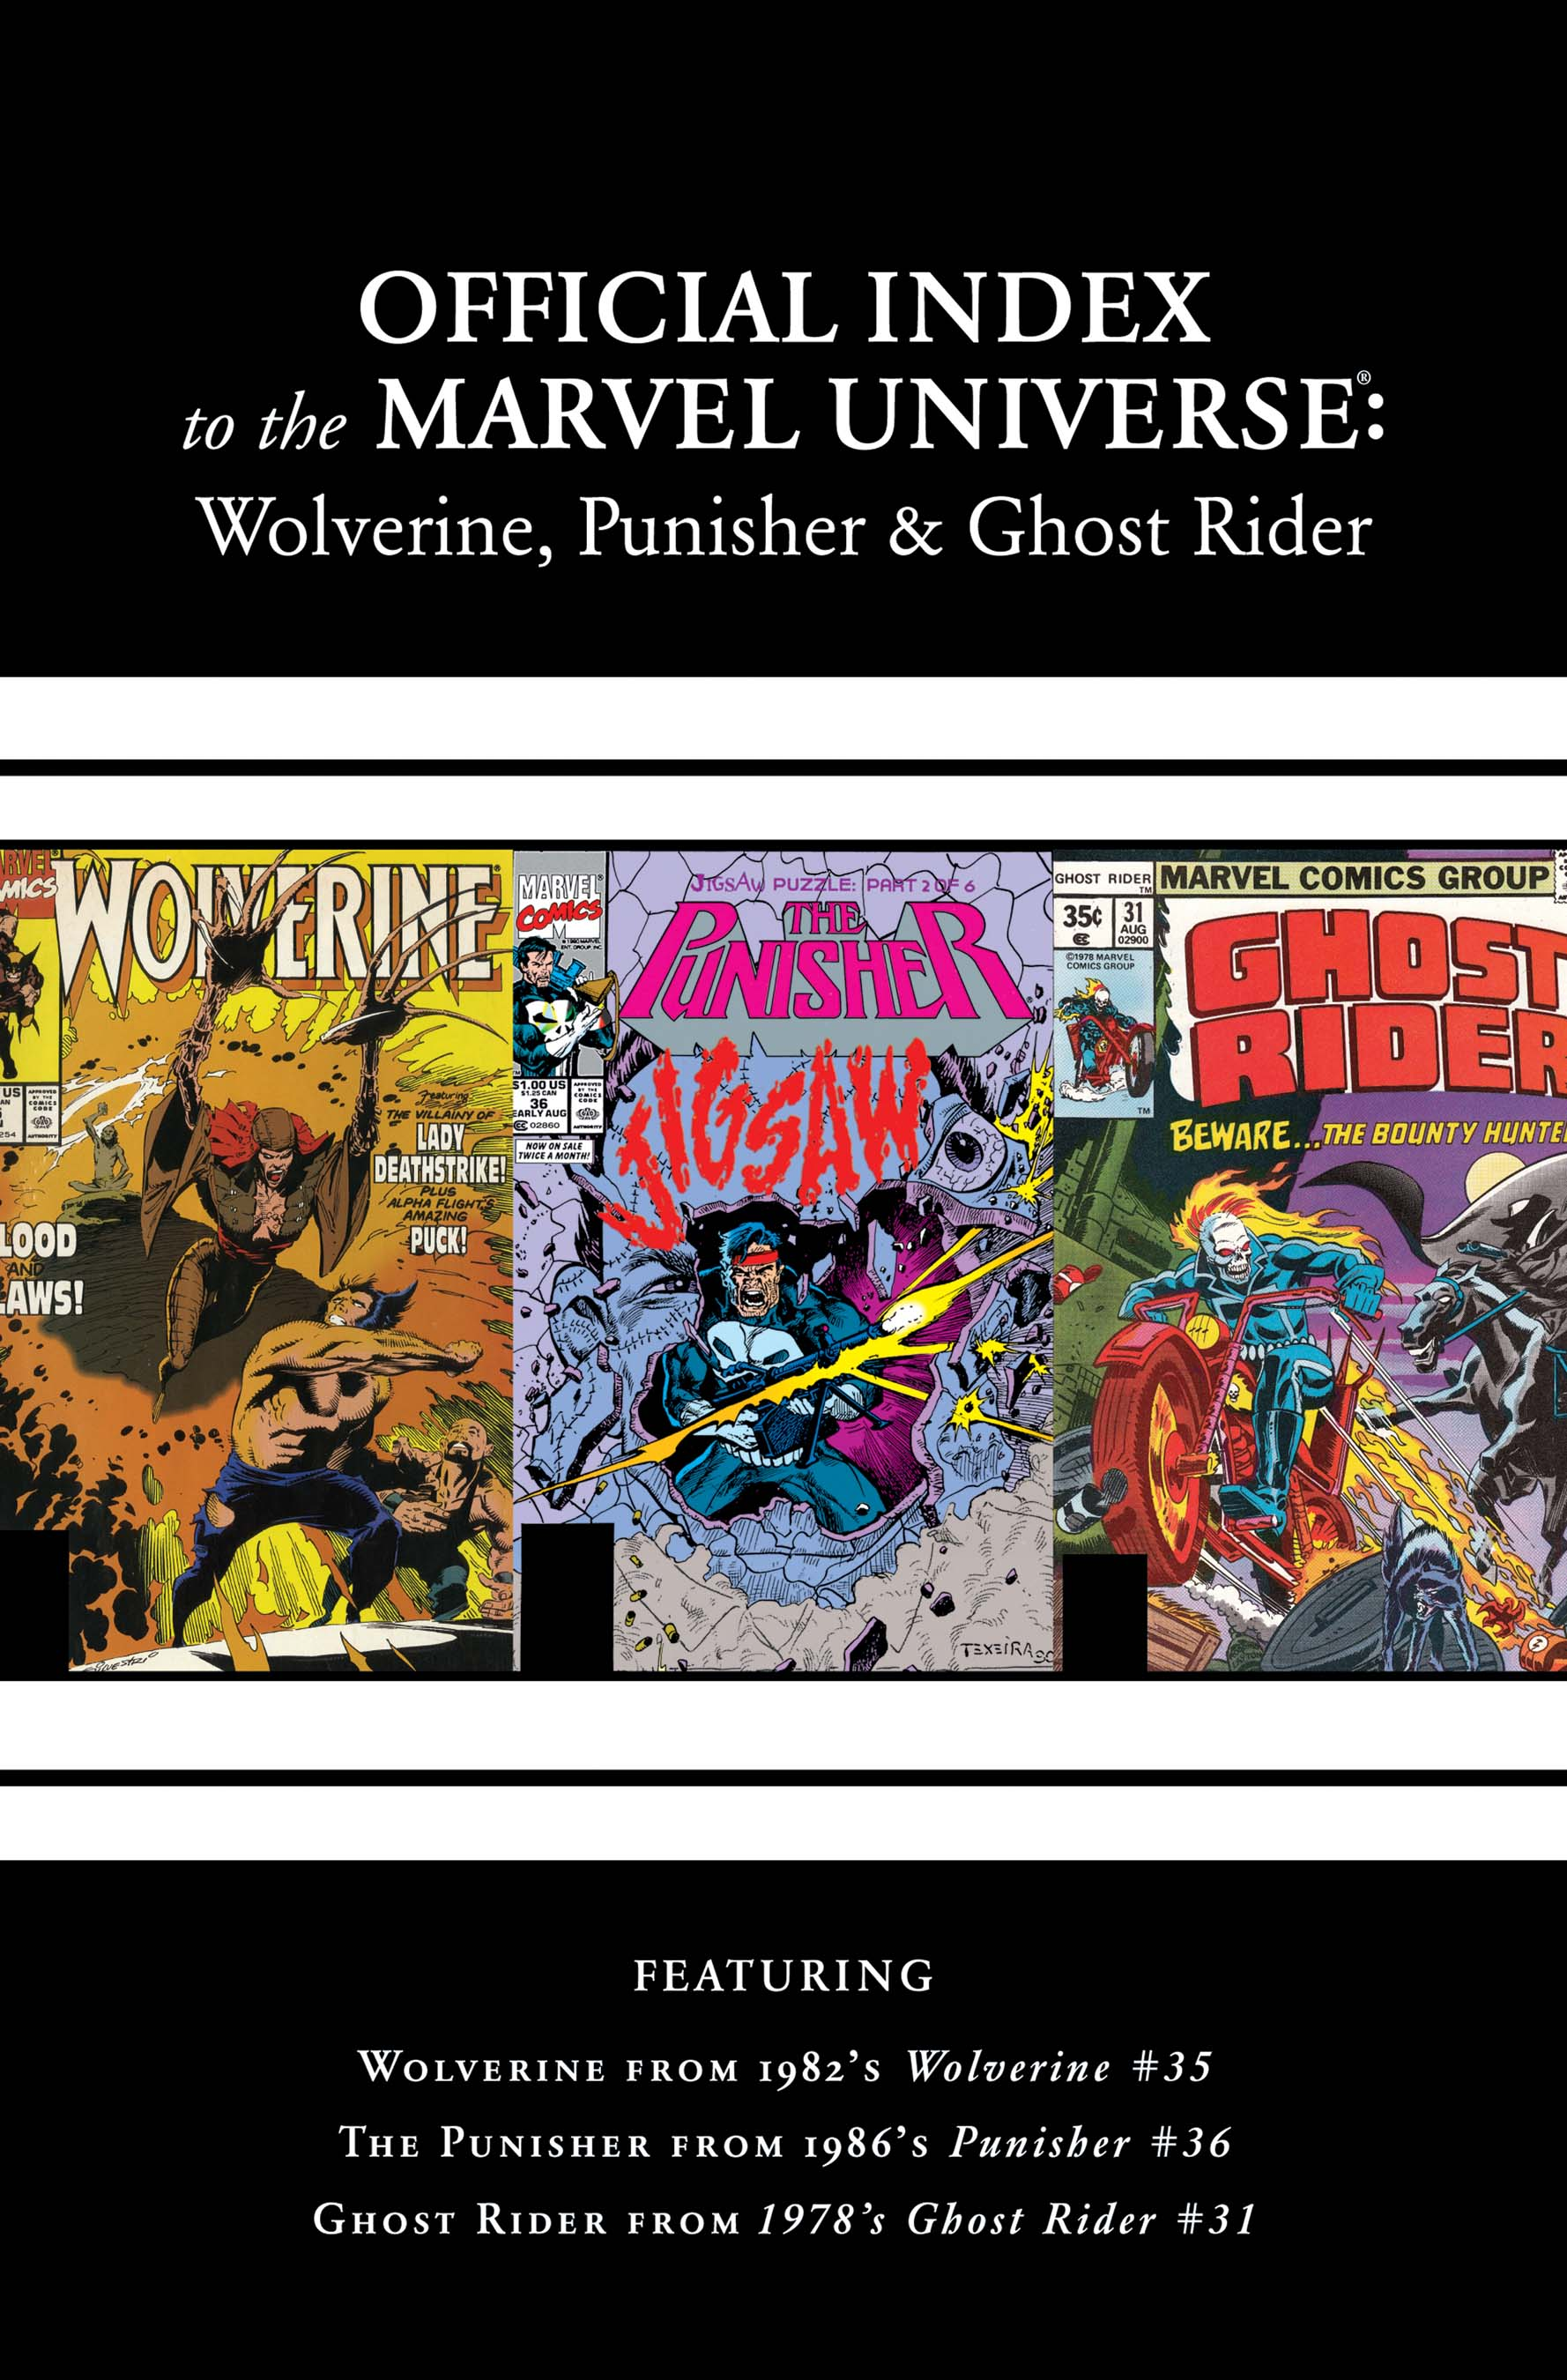 Wolverine, Punisher & Ghost Rider: Official Index to the Marvel Universe (2011) #2